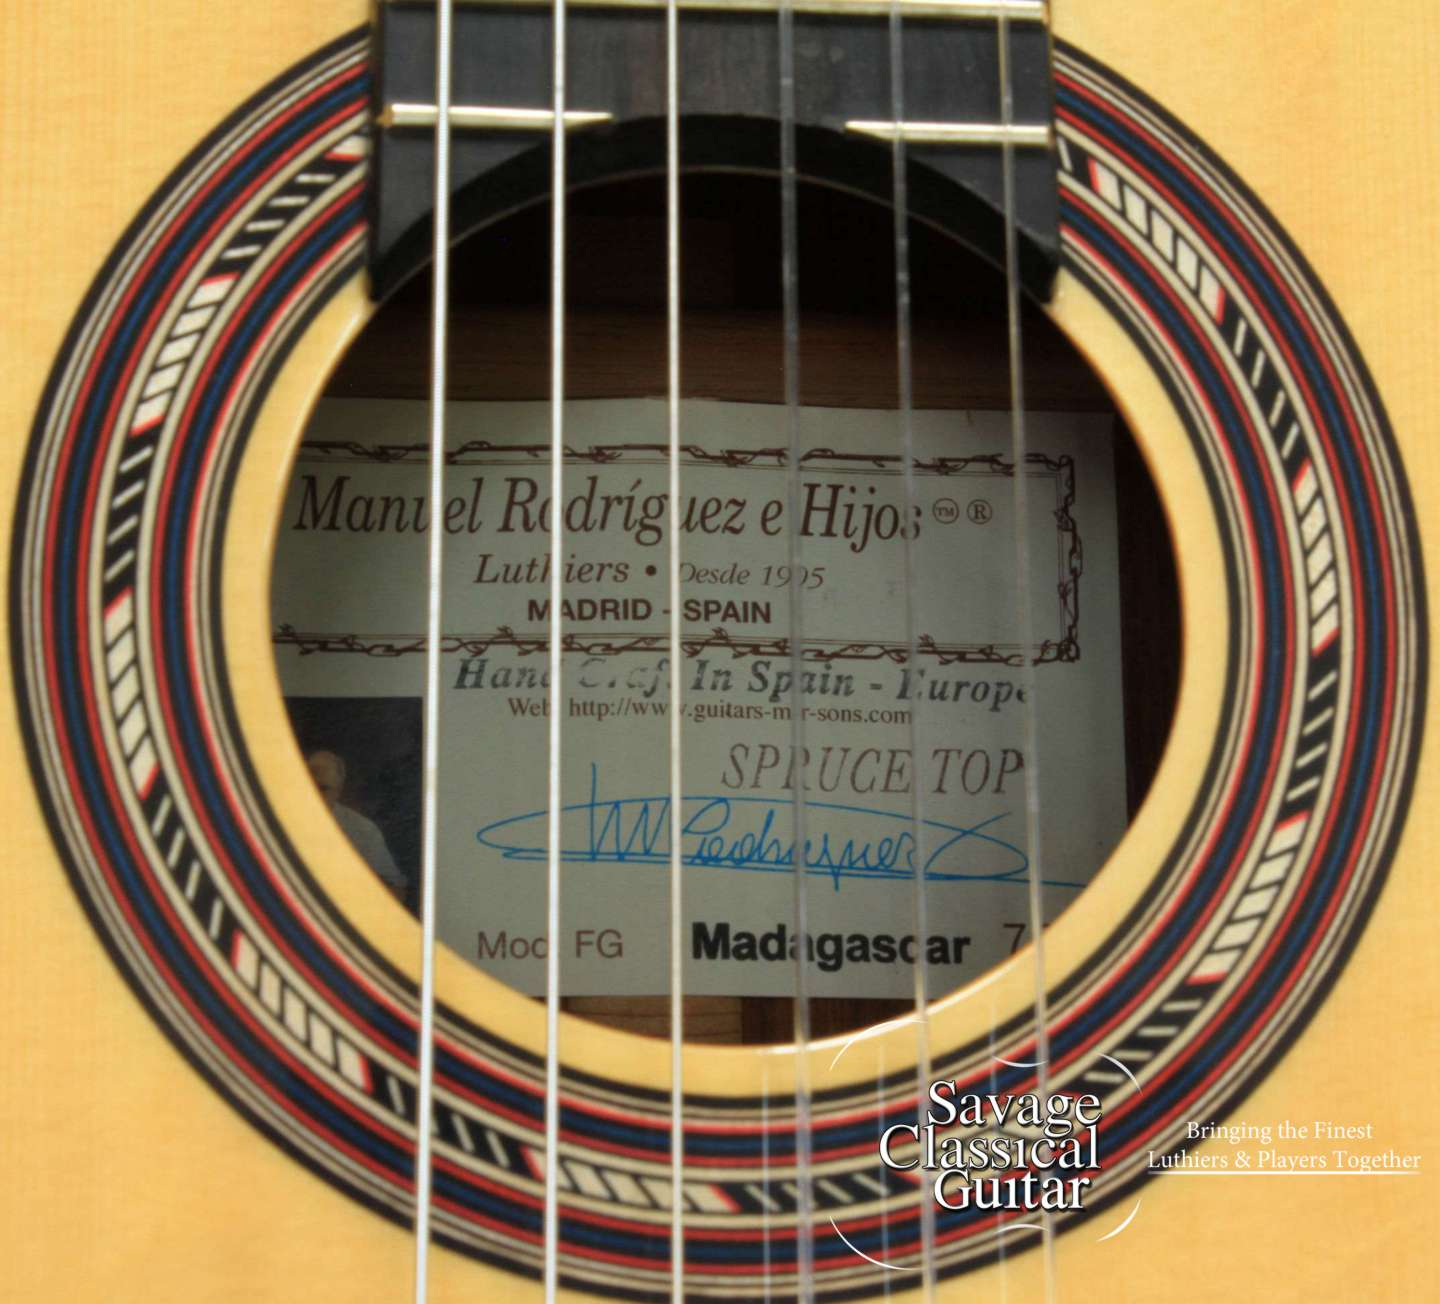 Manuel rodriguez classical guitar fg madagascar savage for Luthier madrid